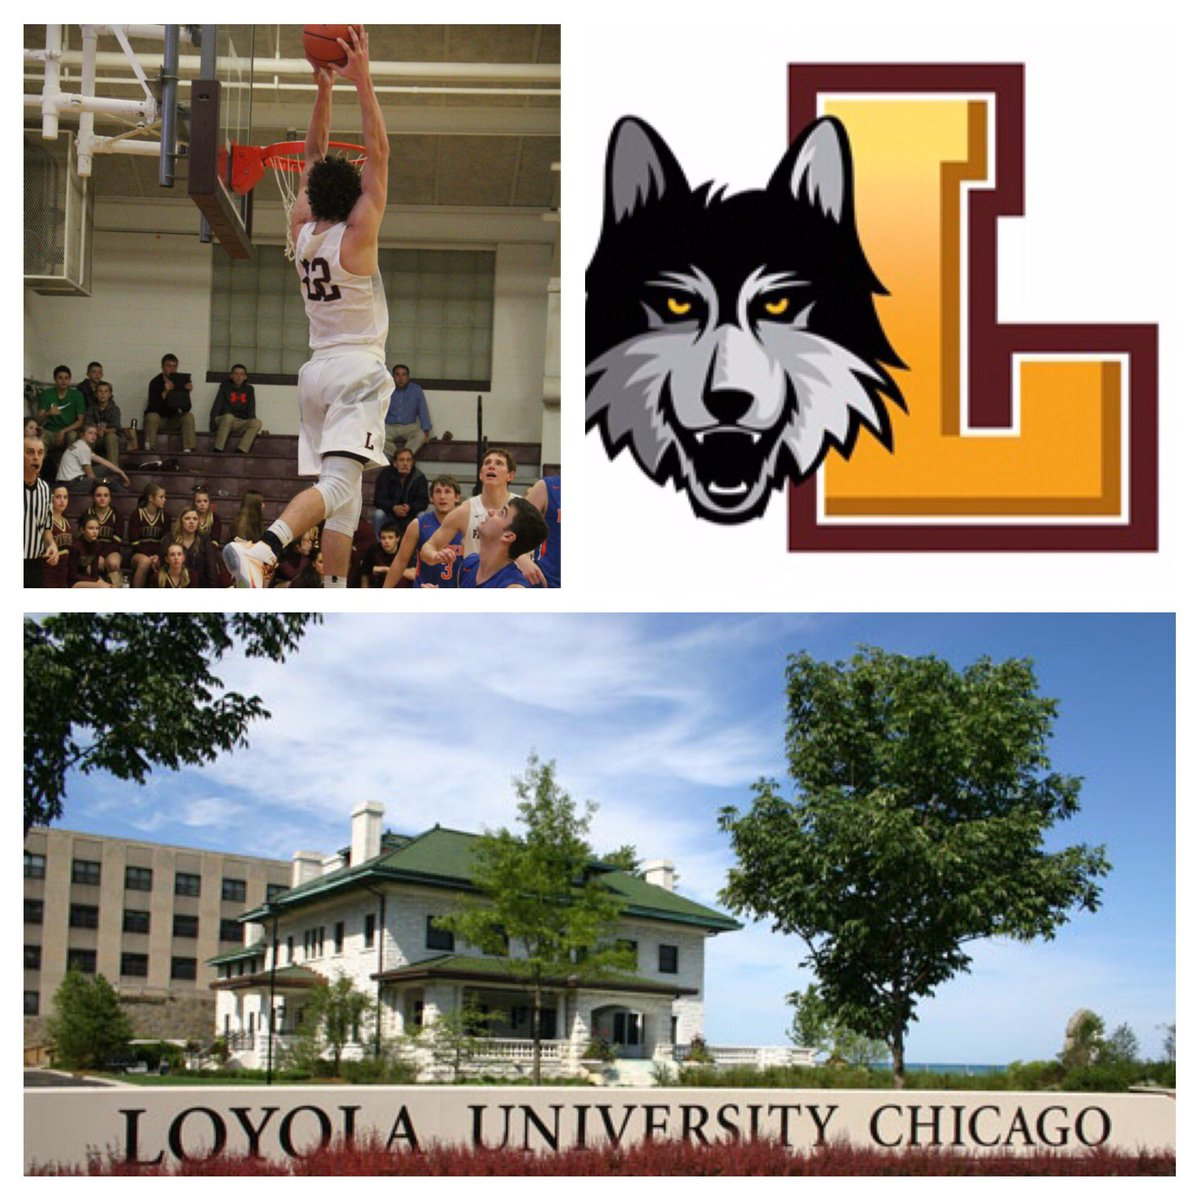 Will I get into the University of Chicago?